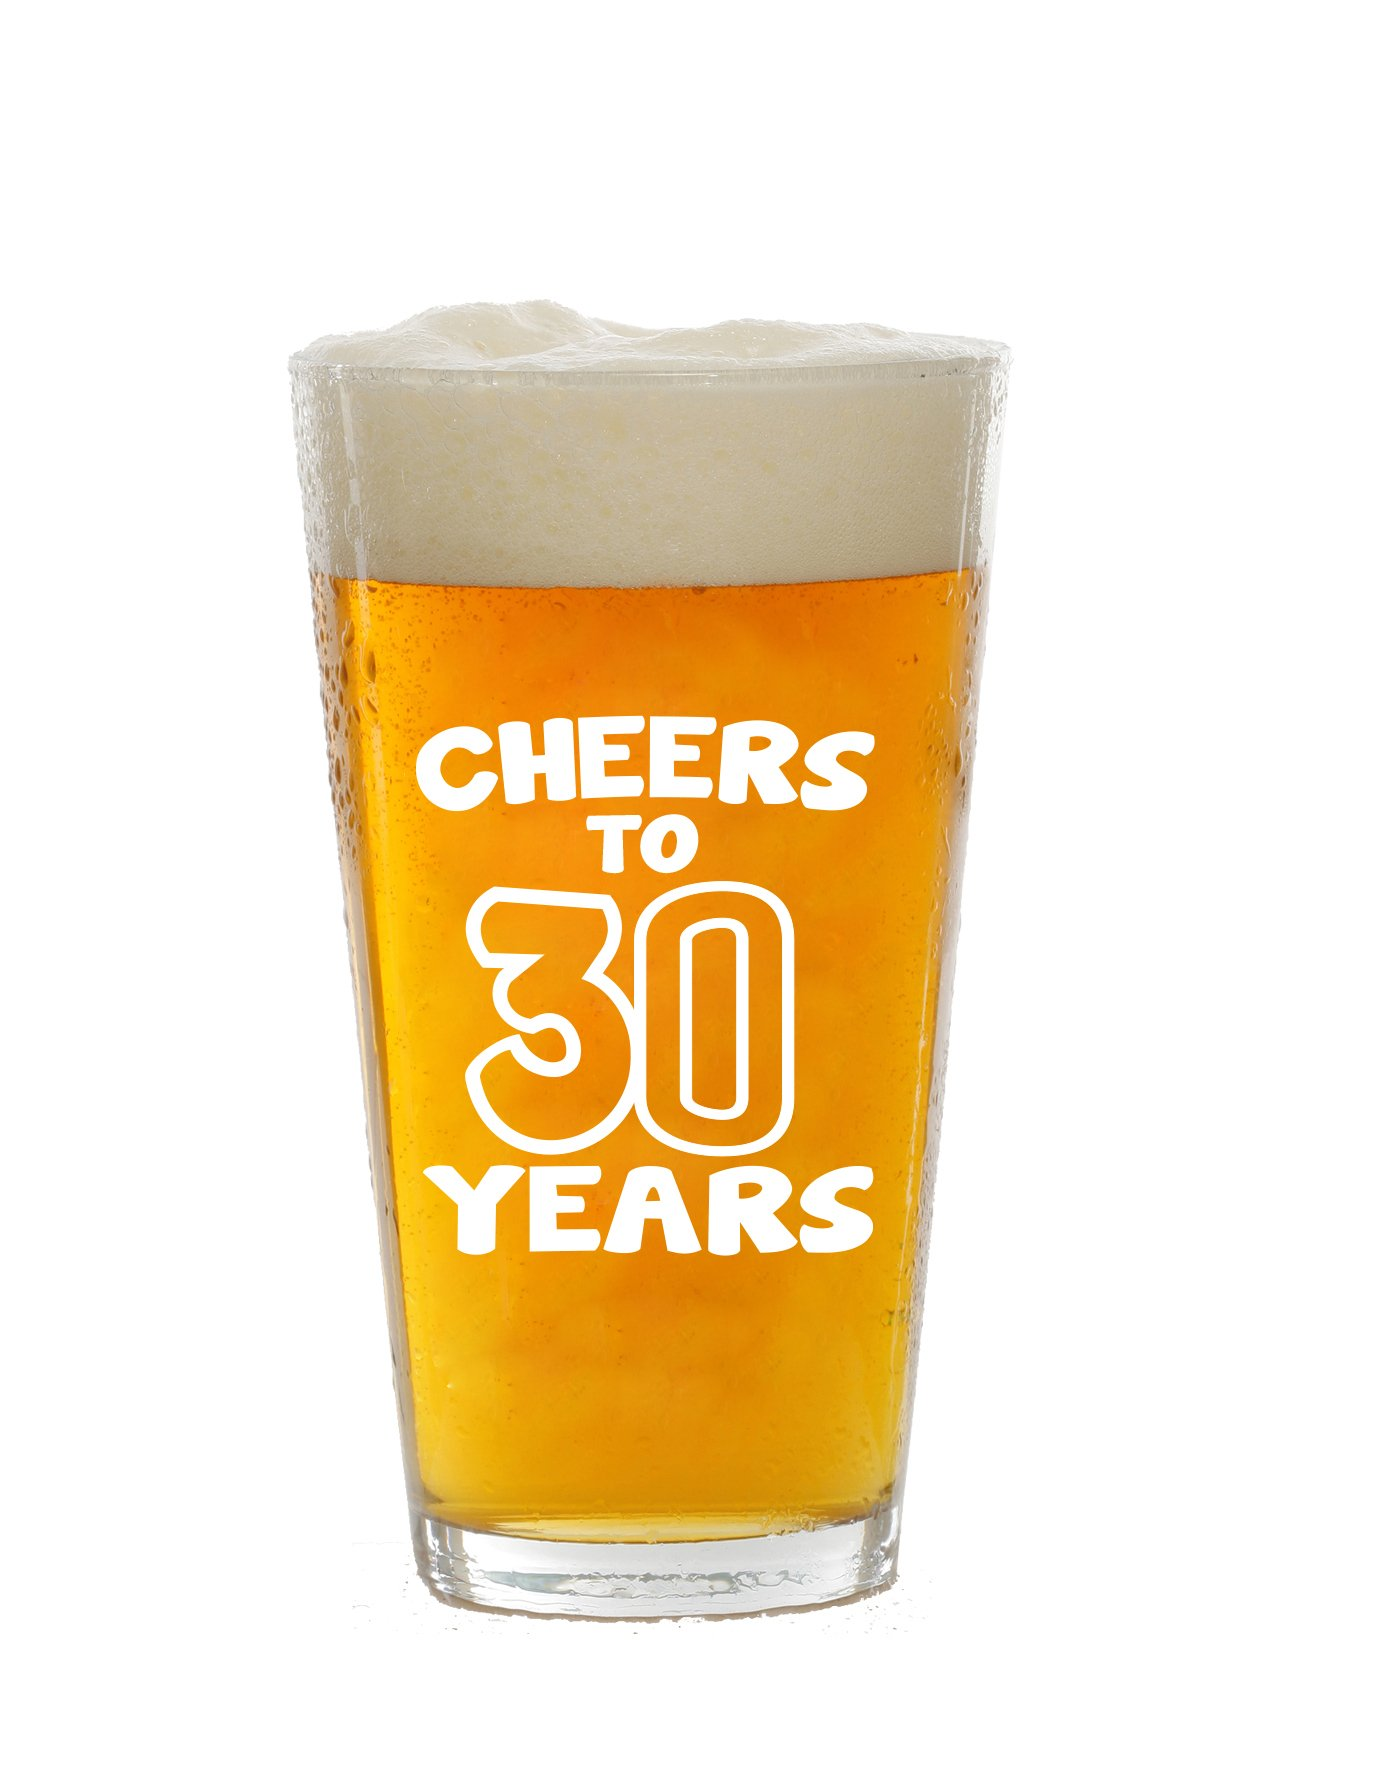 30th Birthday 16oz Beer Pint Glass for Men or Women - Funny Beer Glasses Gift for Him or Her – Cheers To Thirty 30 Years - 30 Year Old Presents for Dad, Husband, Wife, Mom - IPA Mug